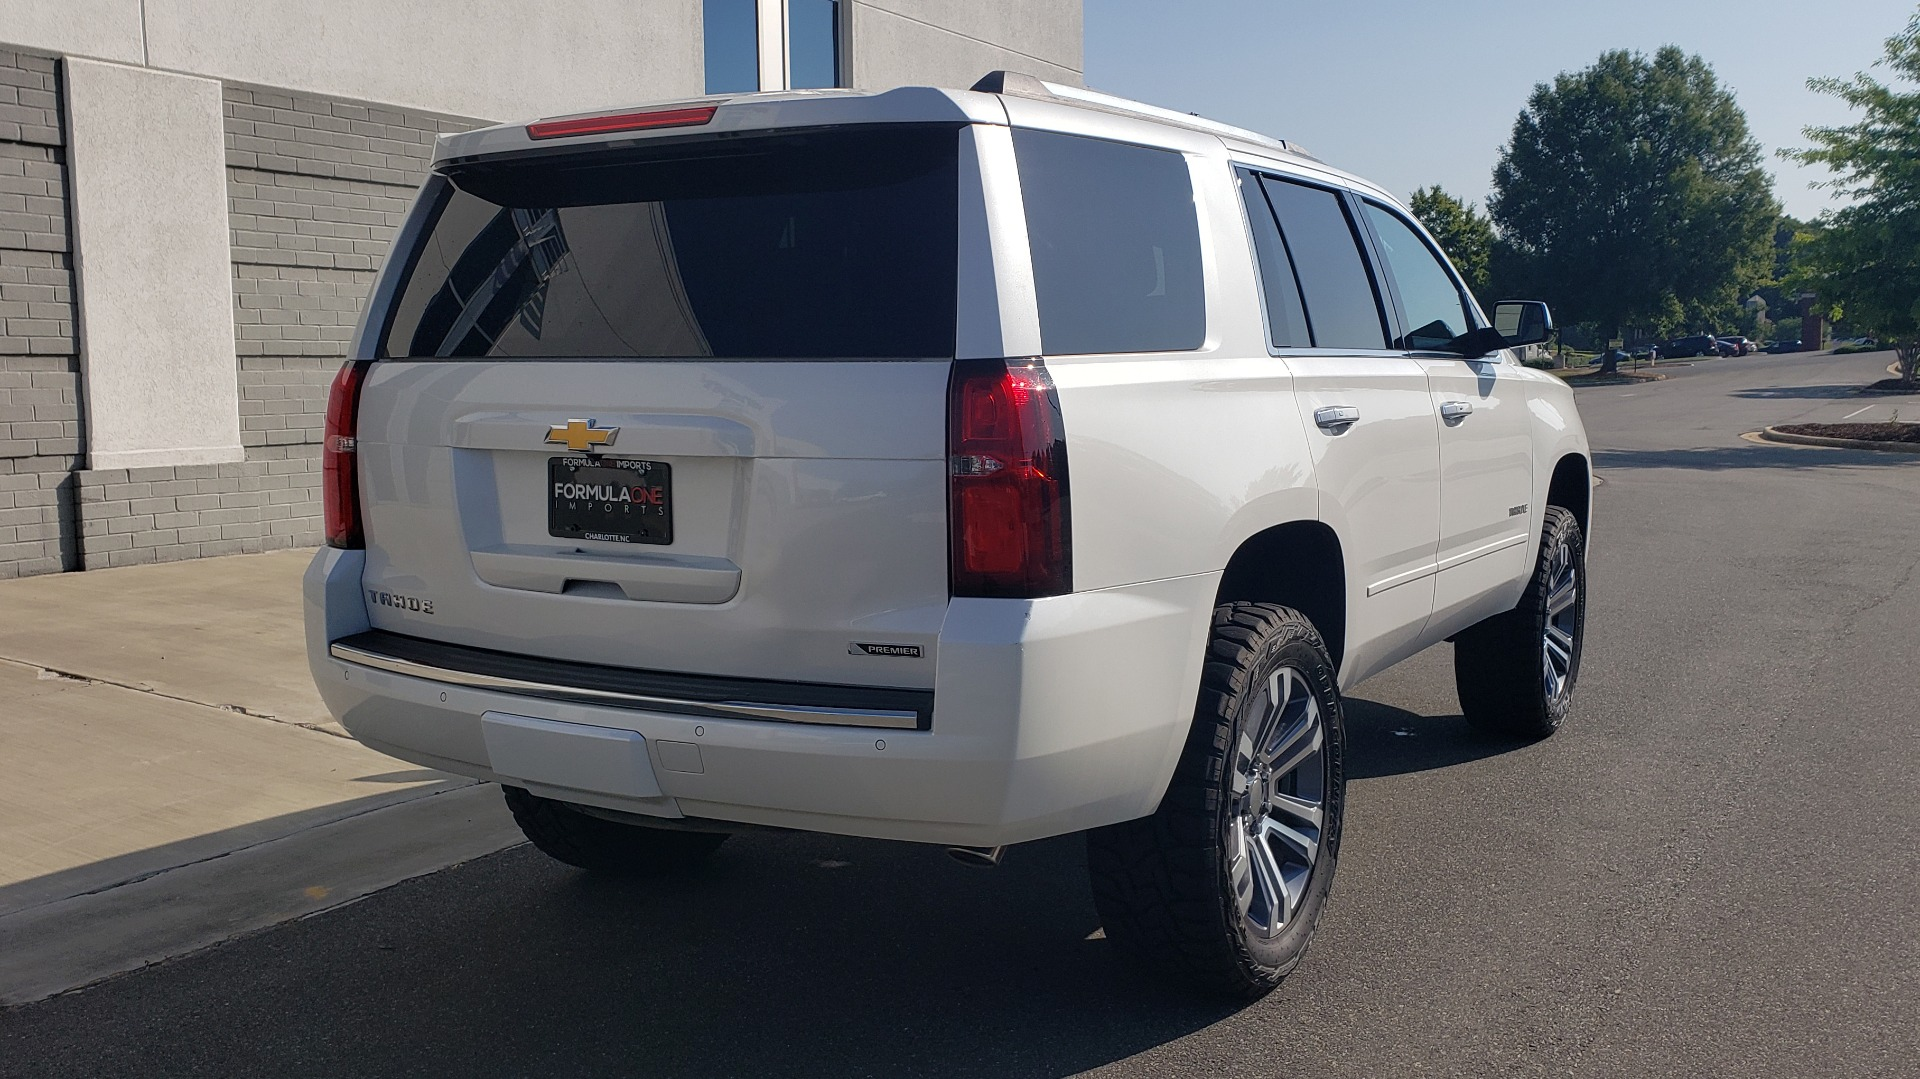 Used 2018 Chevrolet TAHOE PREMIER 4X4 / NAV / BOSE / SUNROOF / ENT SYS / 3-ROW / REARVIEW for sale $55,995 at Formula Imports in Charlotte NC 28227 2